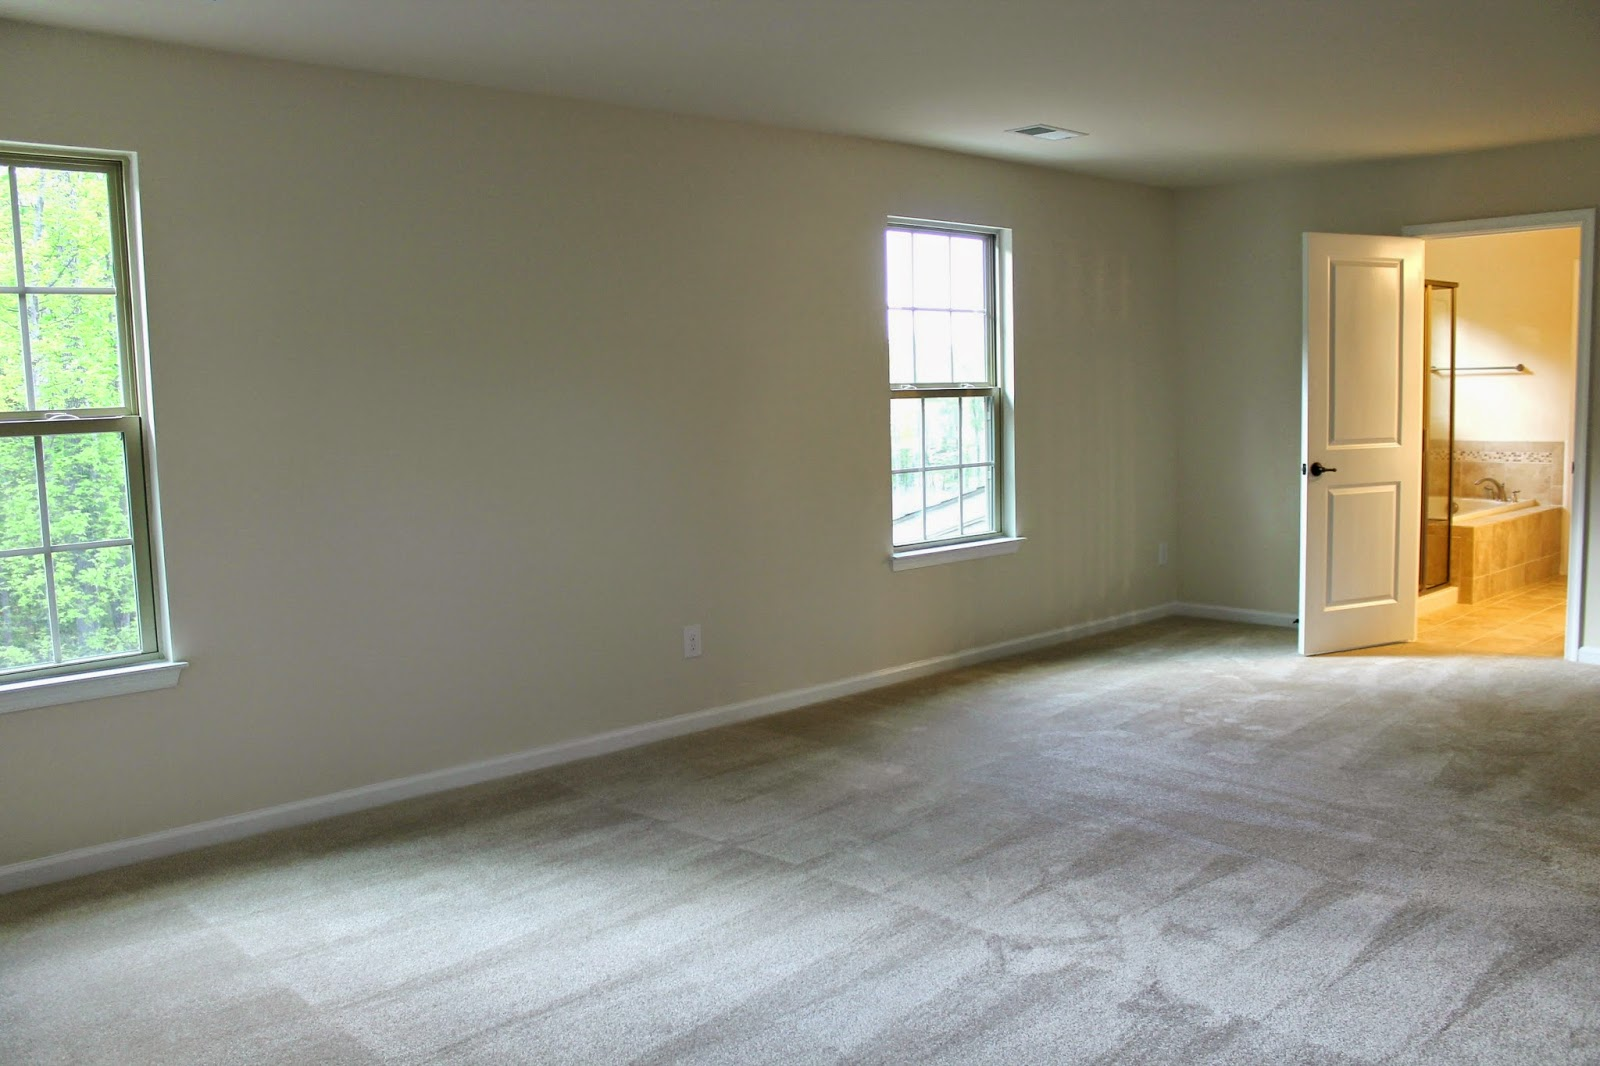 ryan homes naples master bedroom his and hers closets